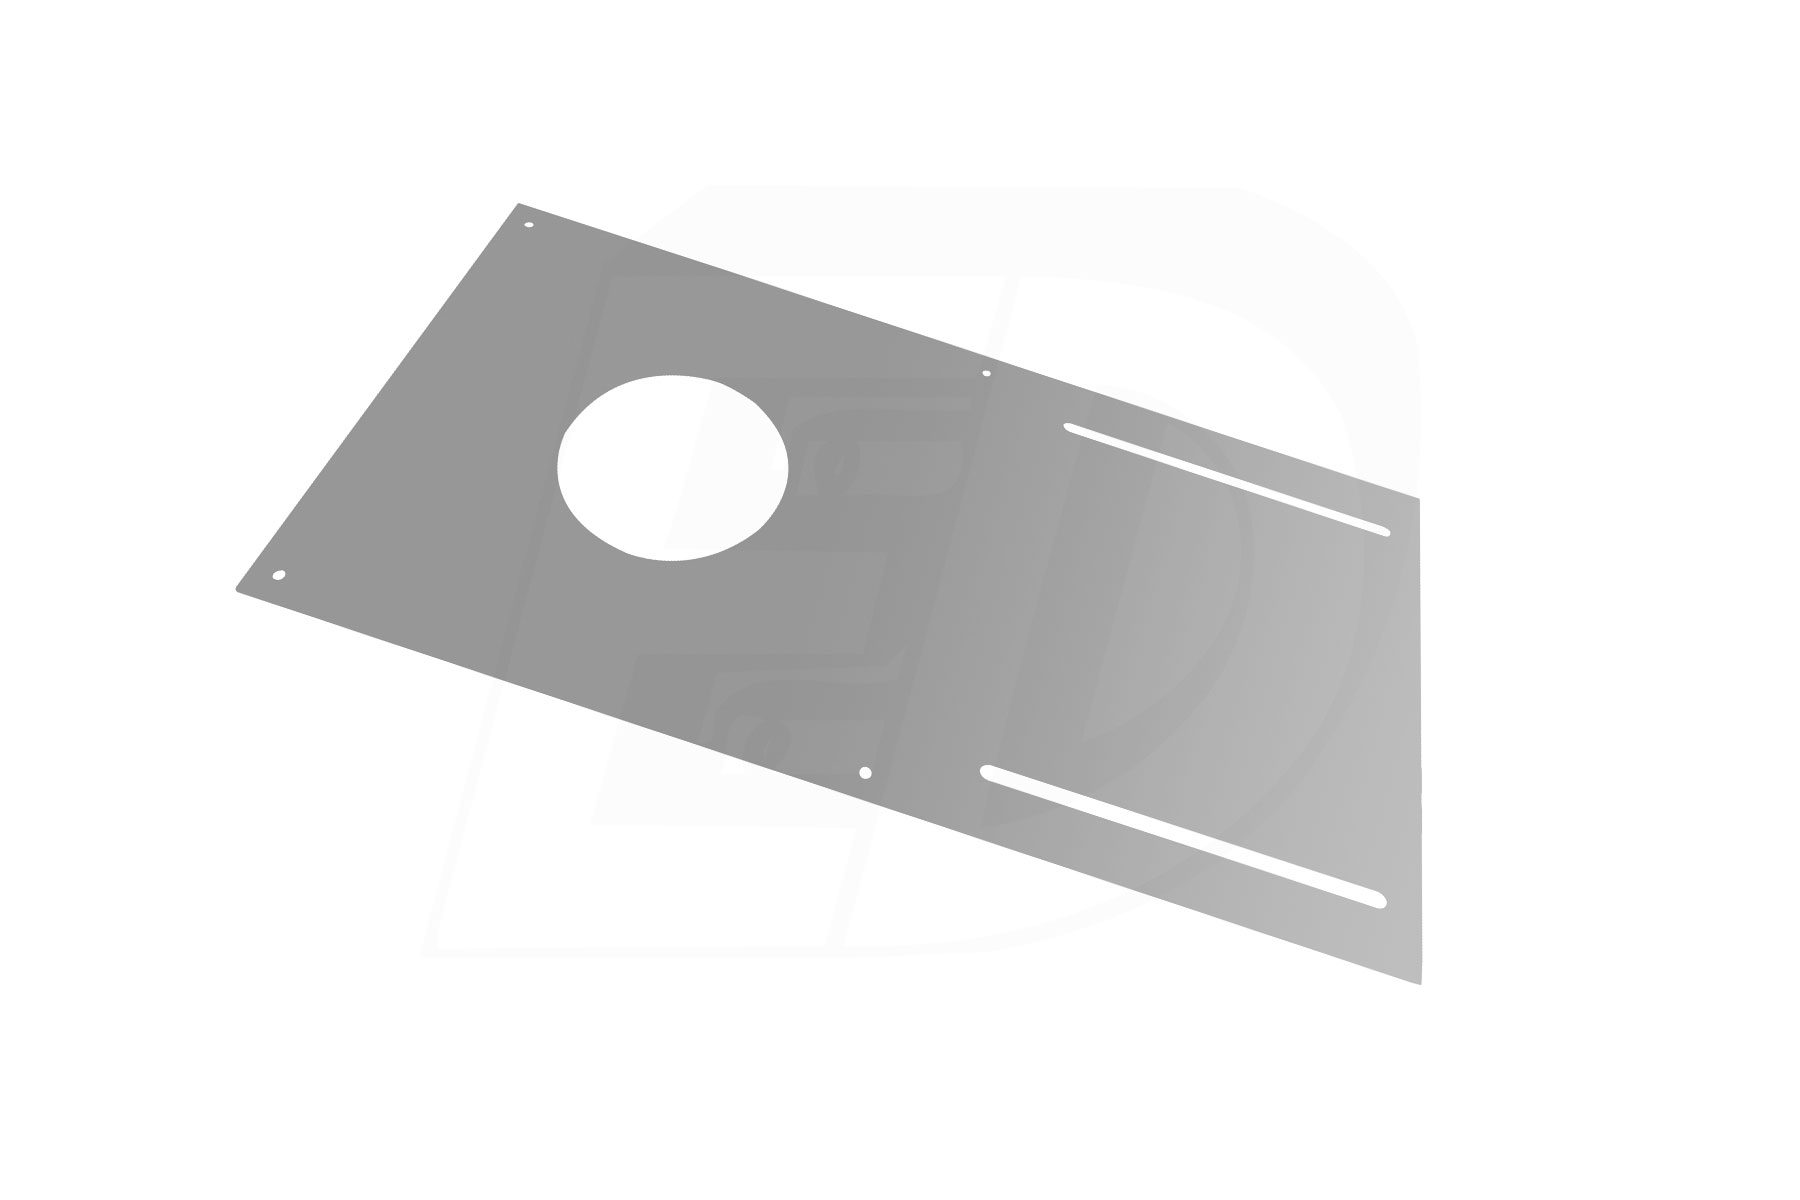 Round Hole Cut Pre-Mounting Plate for DLSGR 3 Inch. Round Integrated LED Gimbal Recessed Light